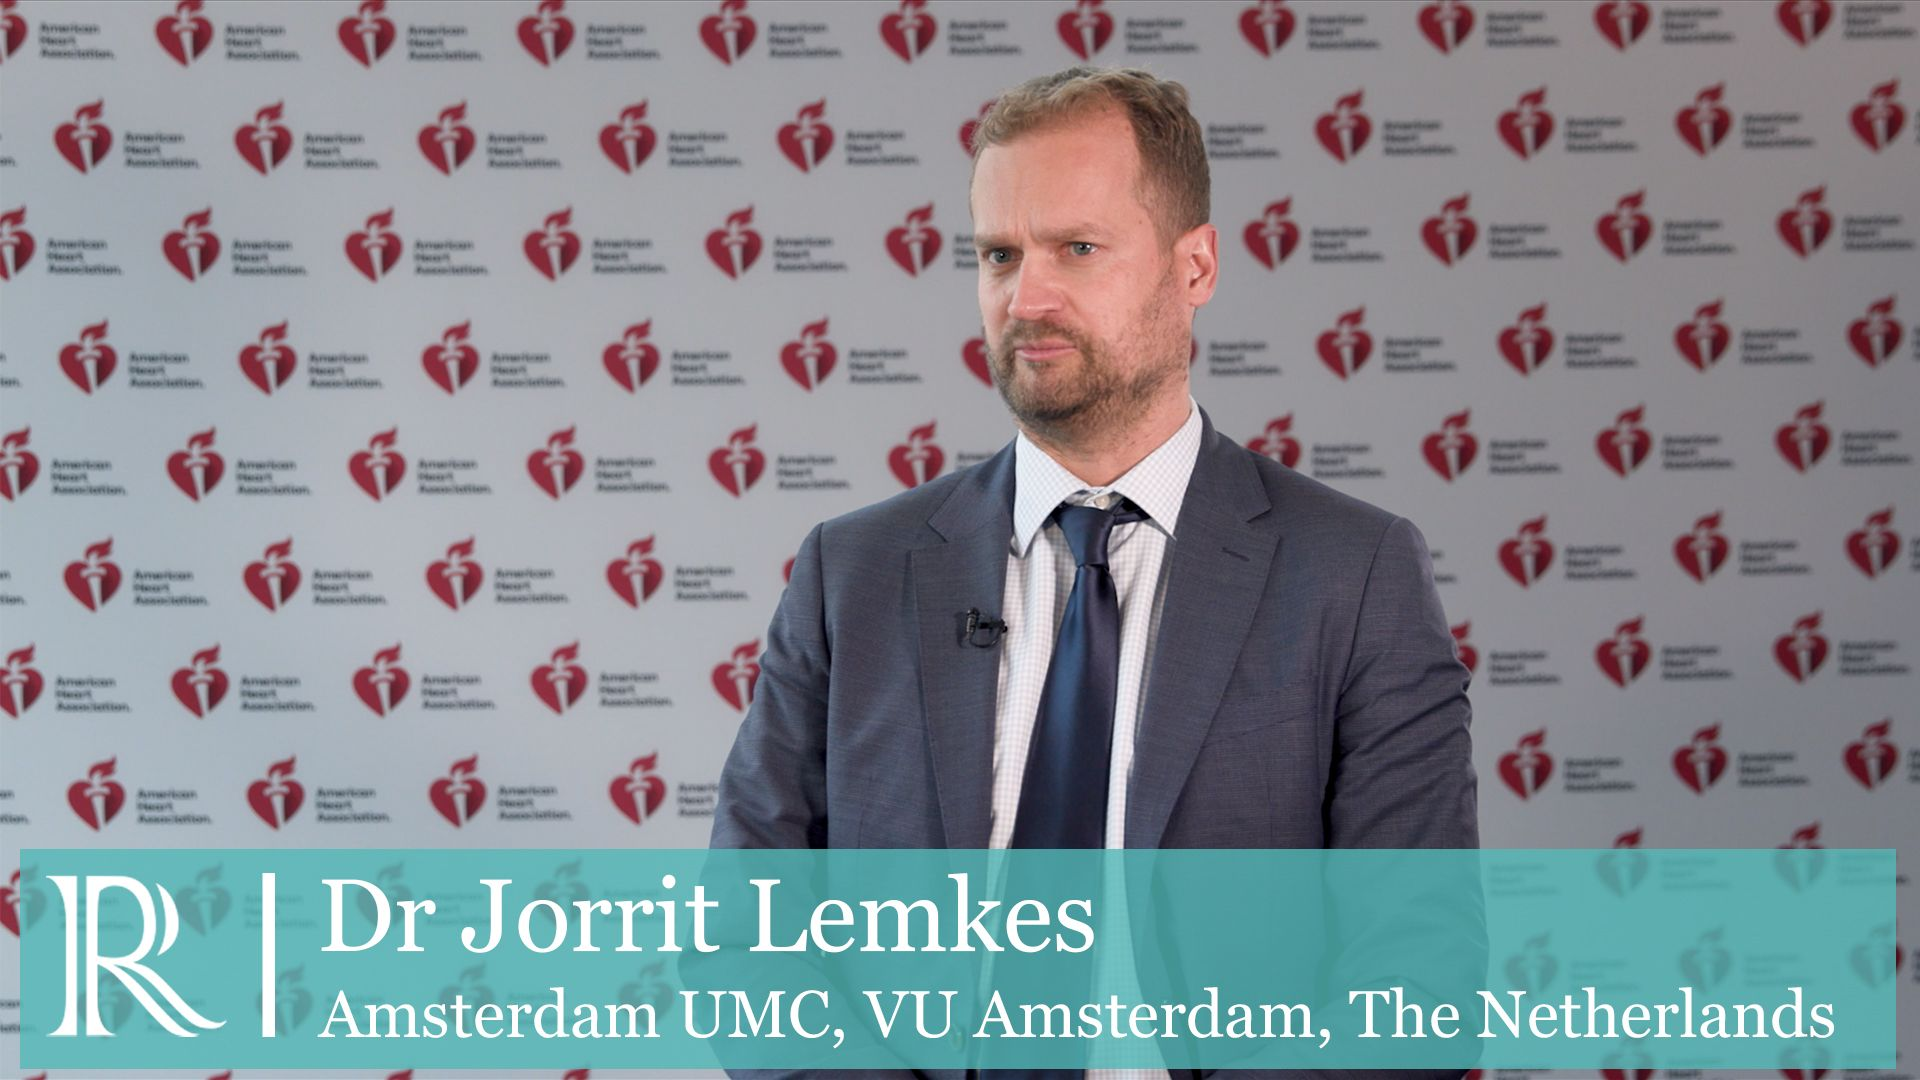 AHA 2019: Results of the COACT Study — Dr Jorrit Lemkes